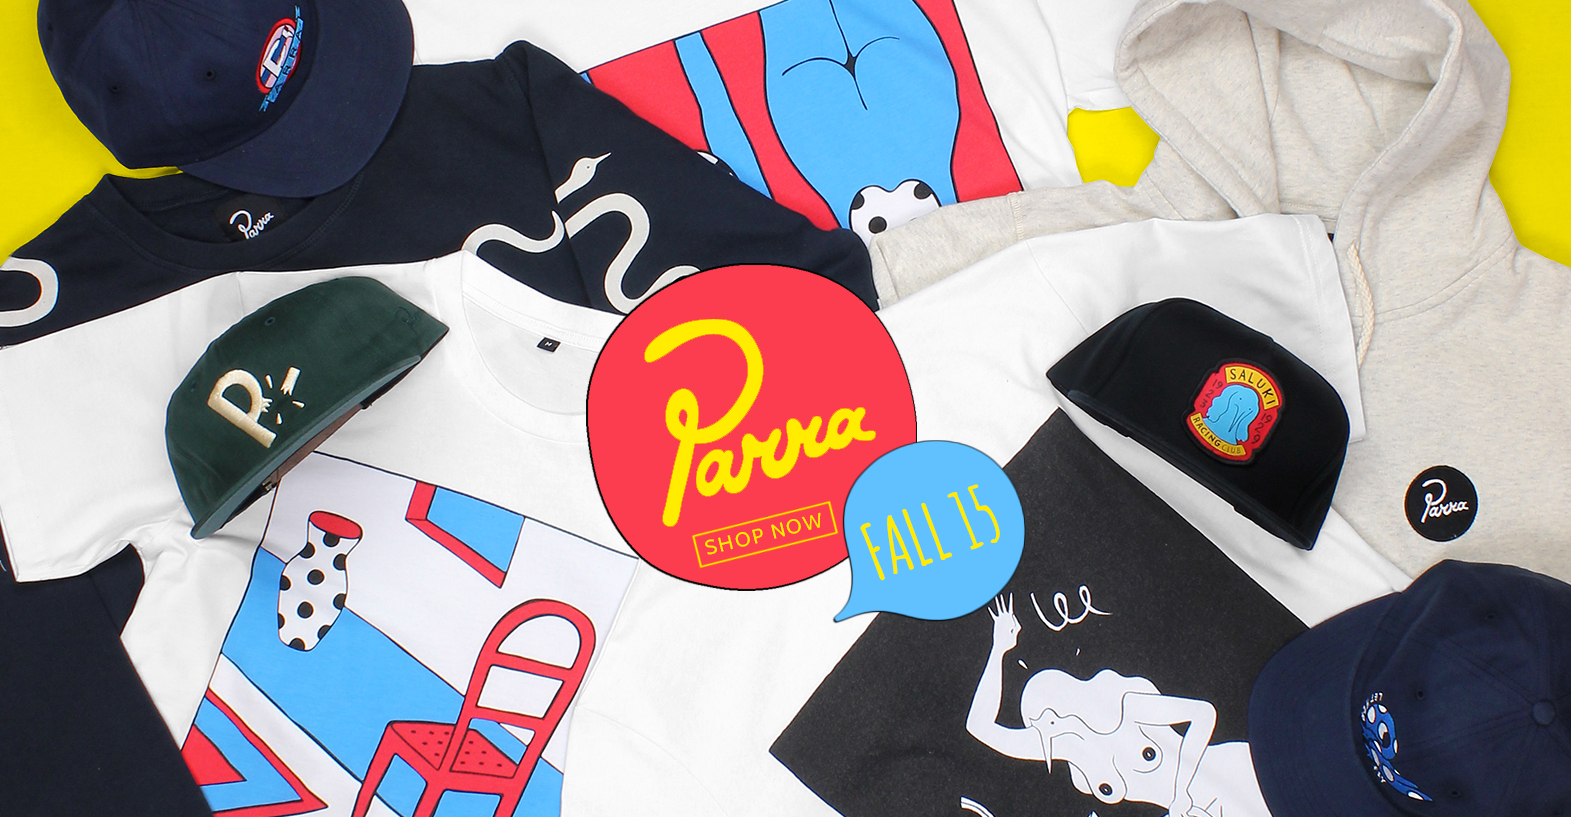 By Parra fall 15